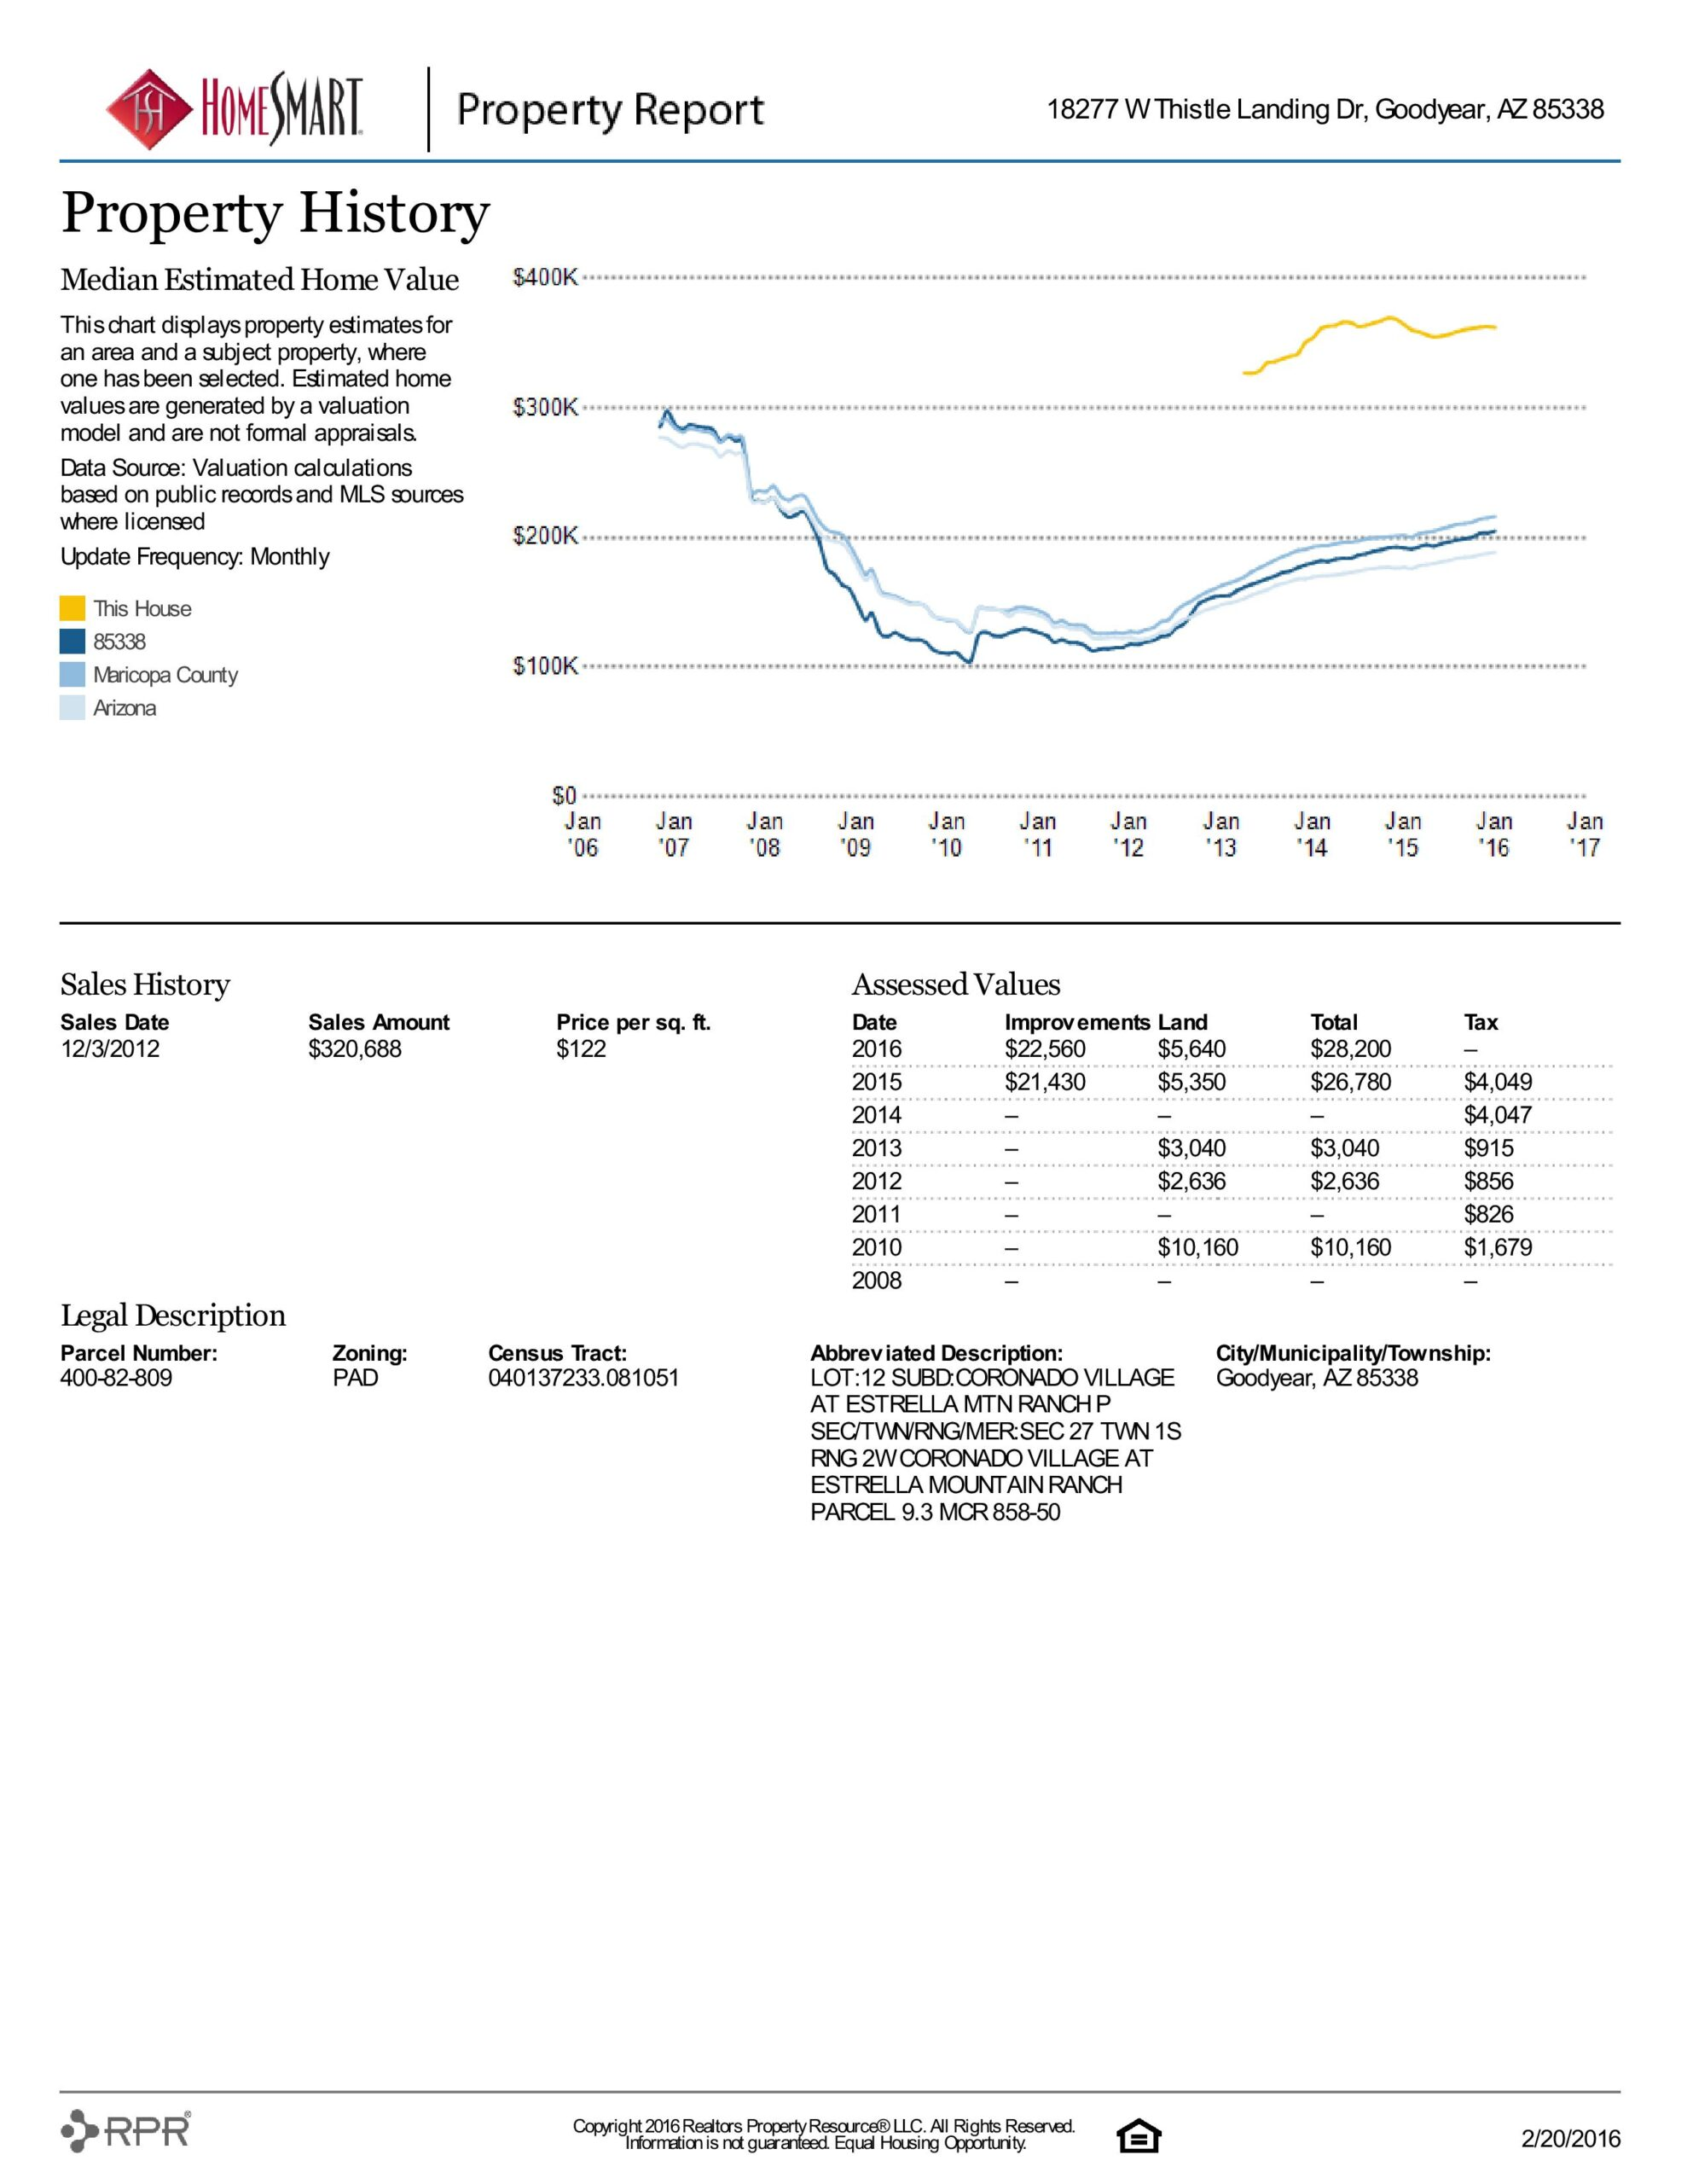 18277 W THISTLE LANDING DR PROPERTY REPORT-page-009